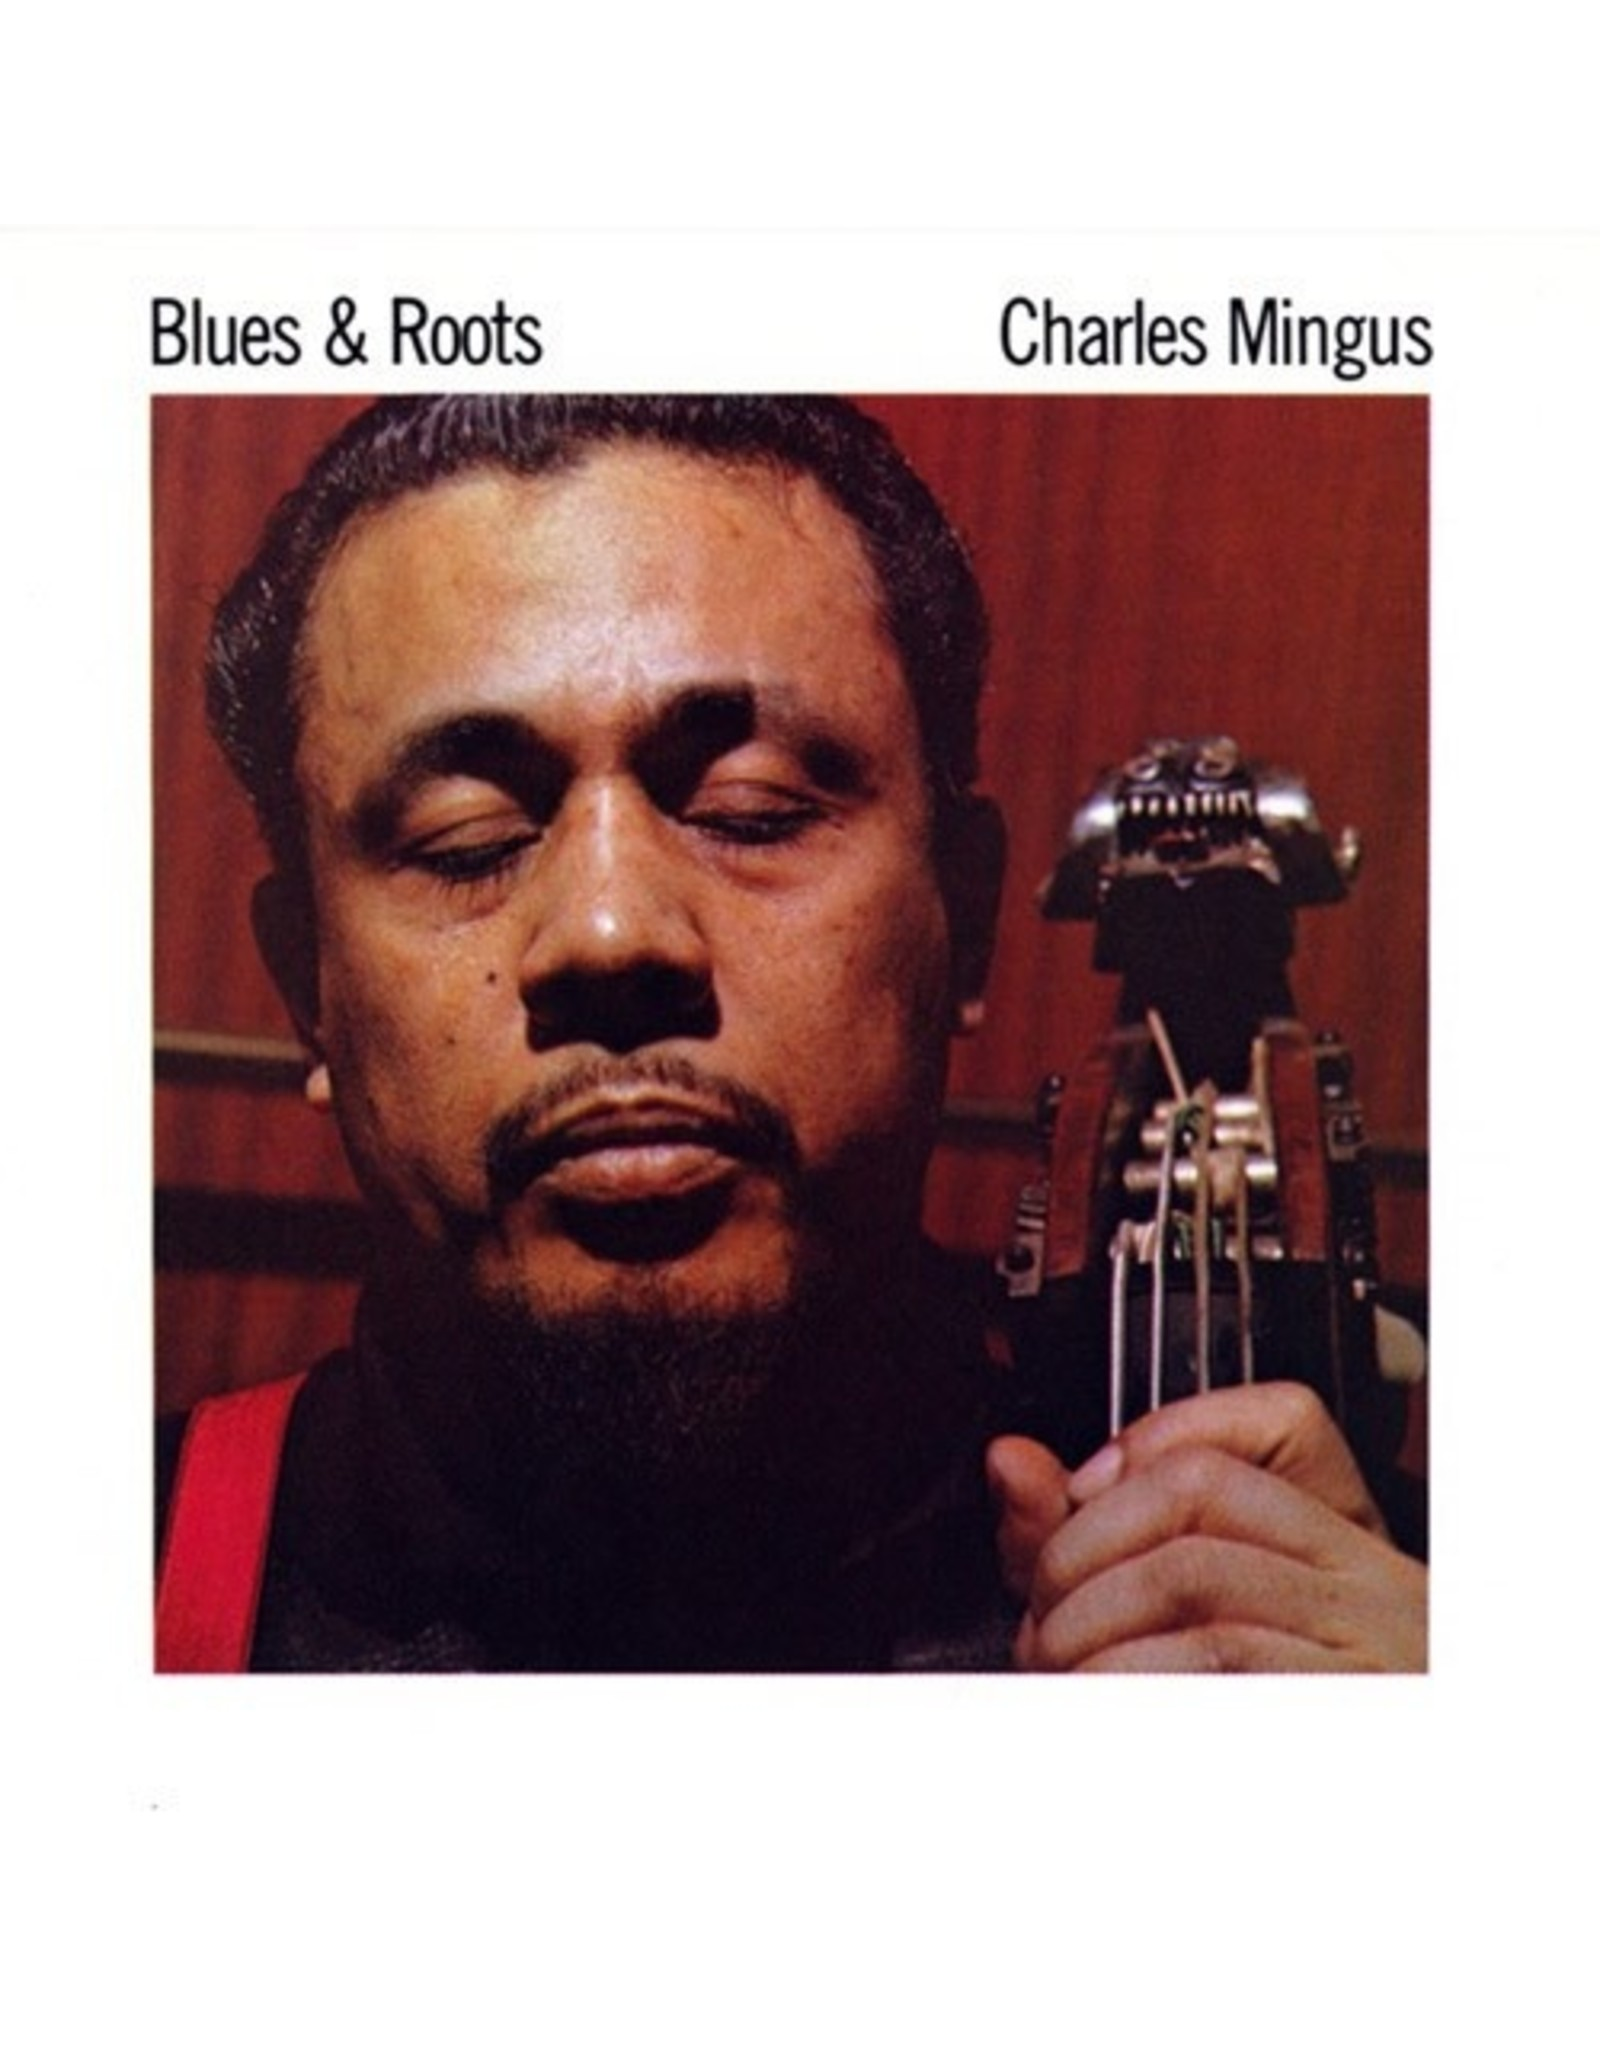 New Vinyl Charles Mingus - Blues & Roots LP